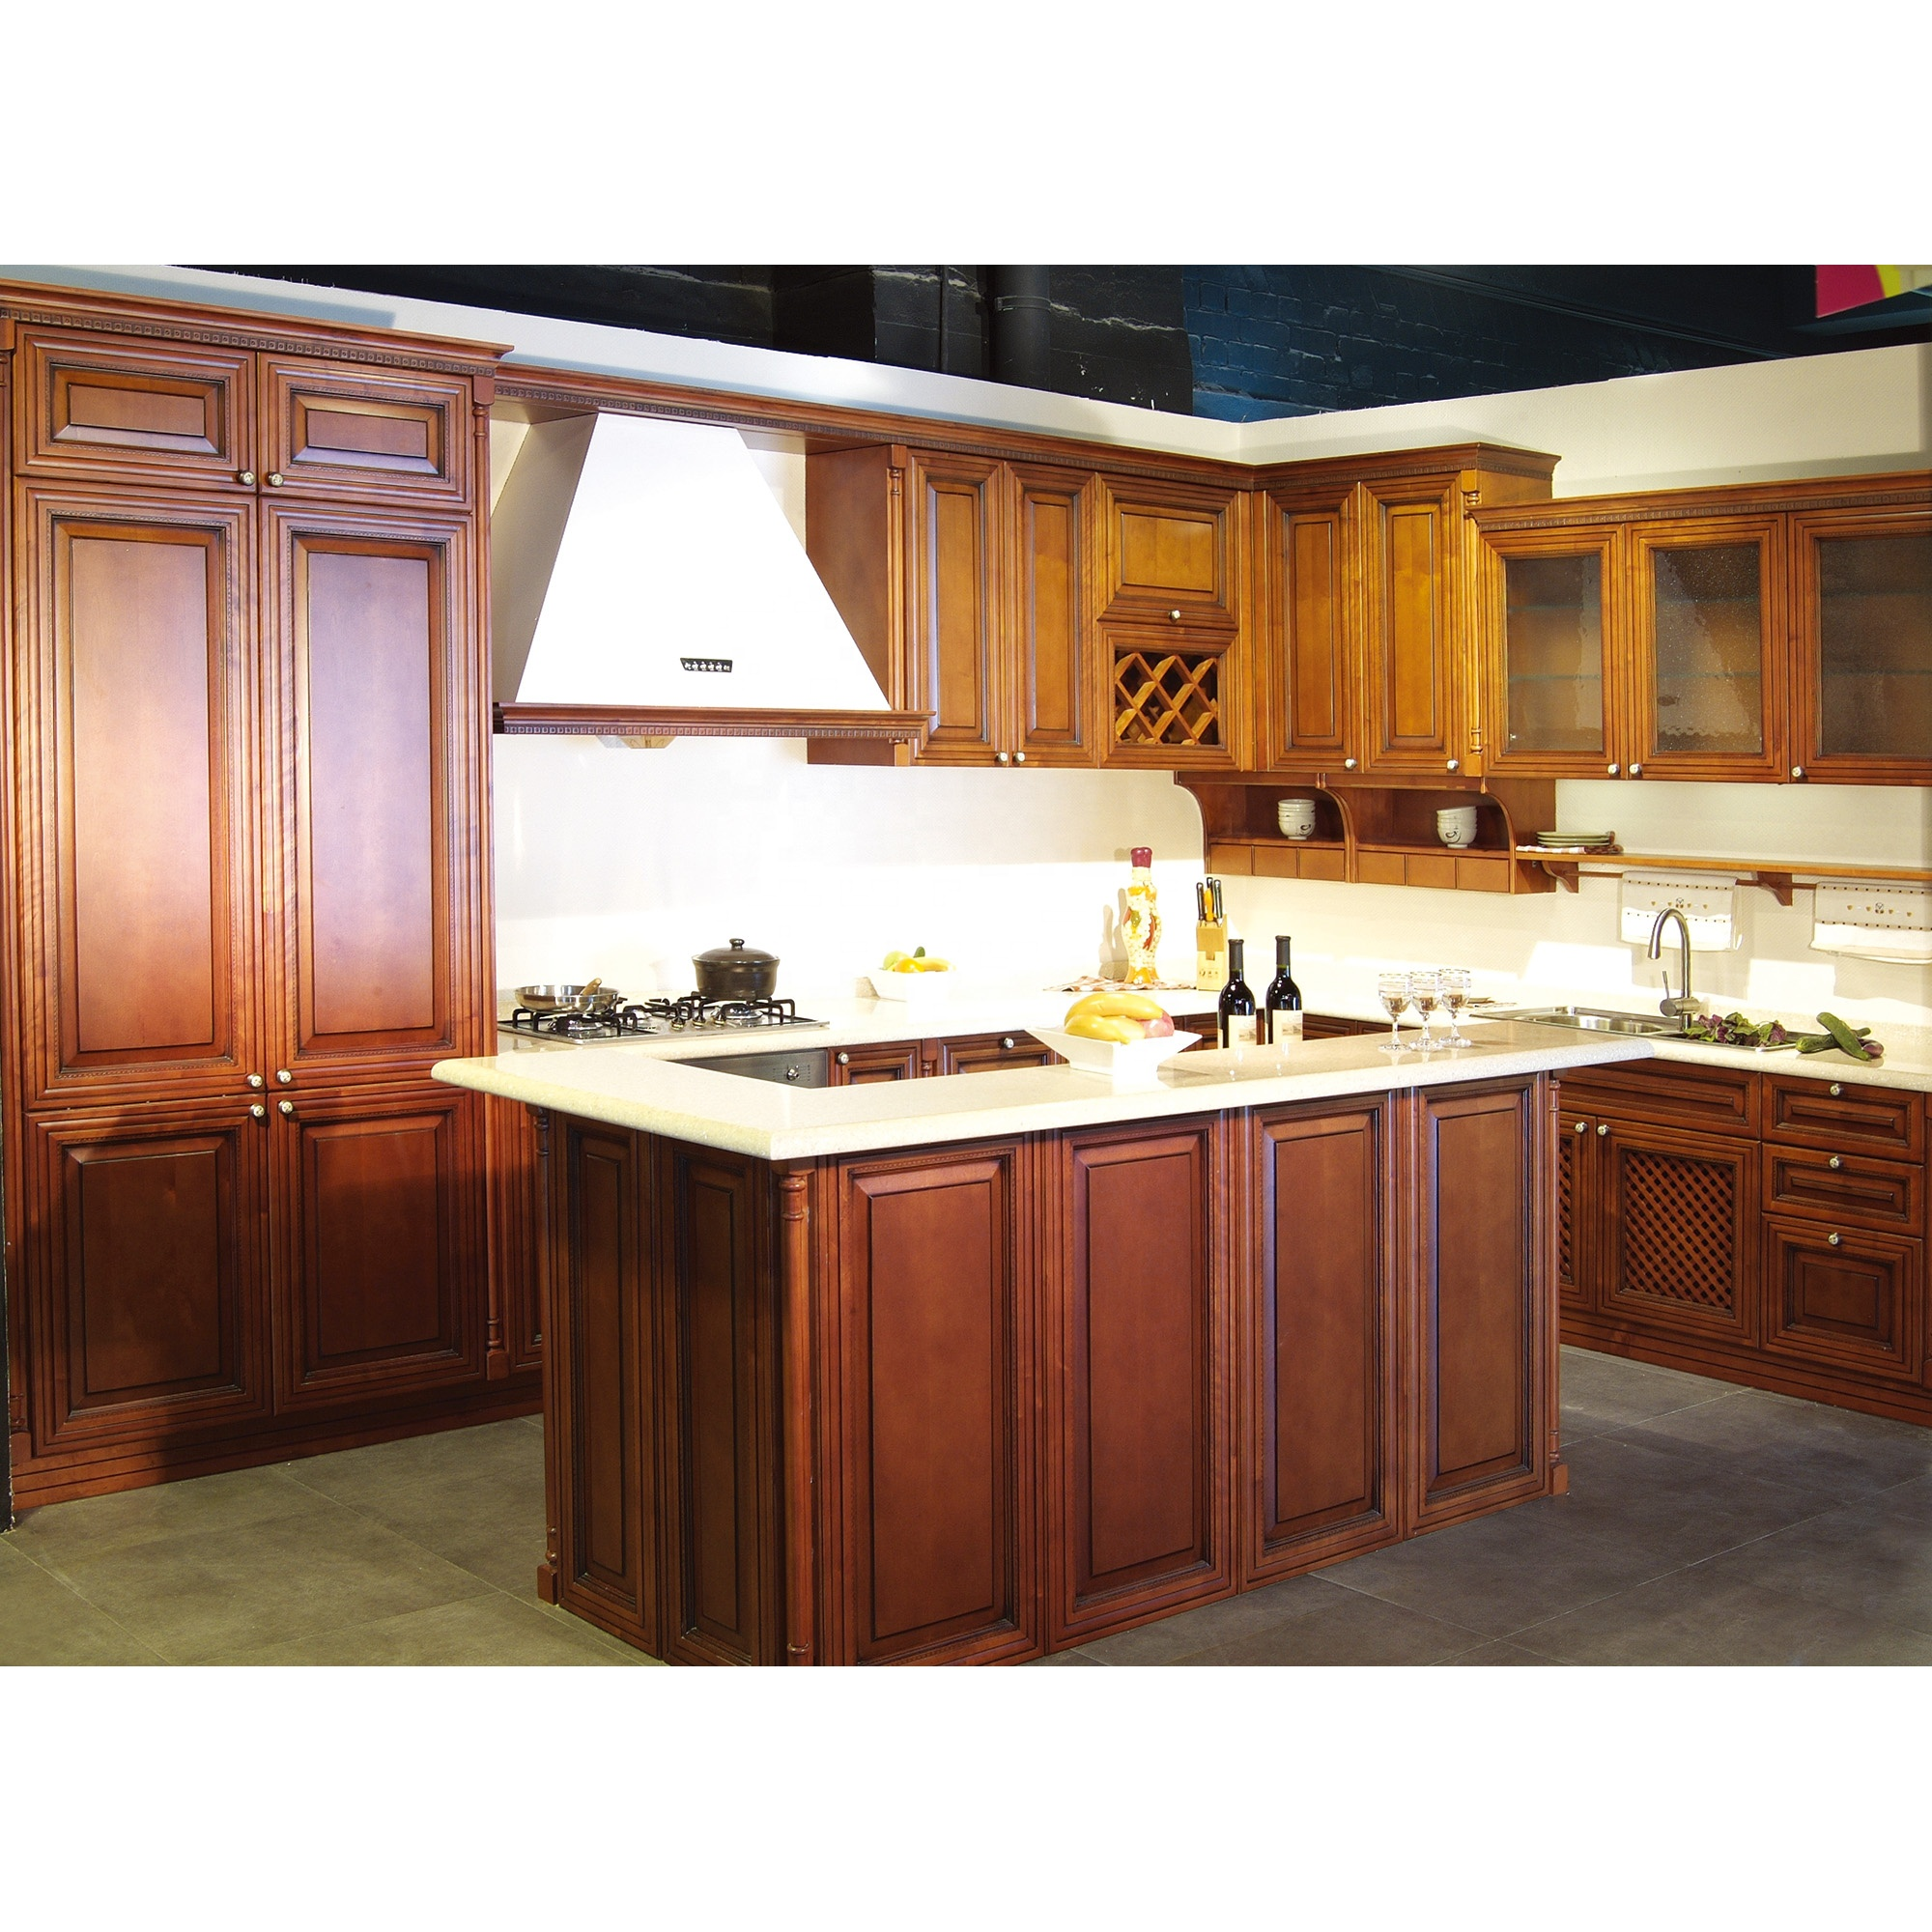 Nicocabinet Custom Kitchen Ideas For Small Spaces Beige Lacquered Kitchen Cabinets Buy Kitchen Cabinets For Sale Modern Kitchen Design Kitchen Wall Hanging Cabinet High Gloss Kitchen Cabinet Cabinets Quick Kitchen Layout Laminate